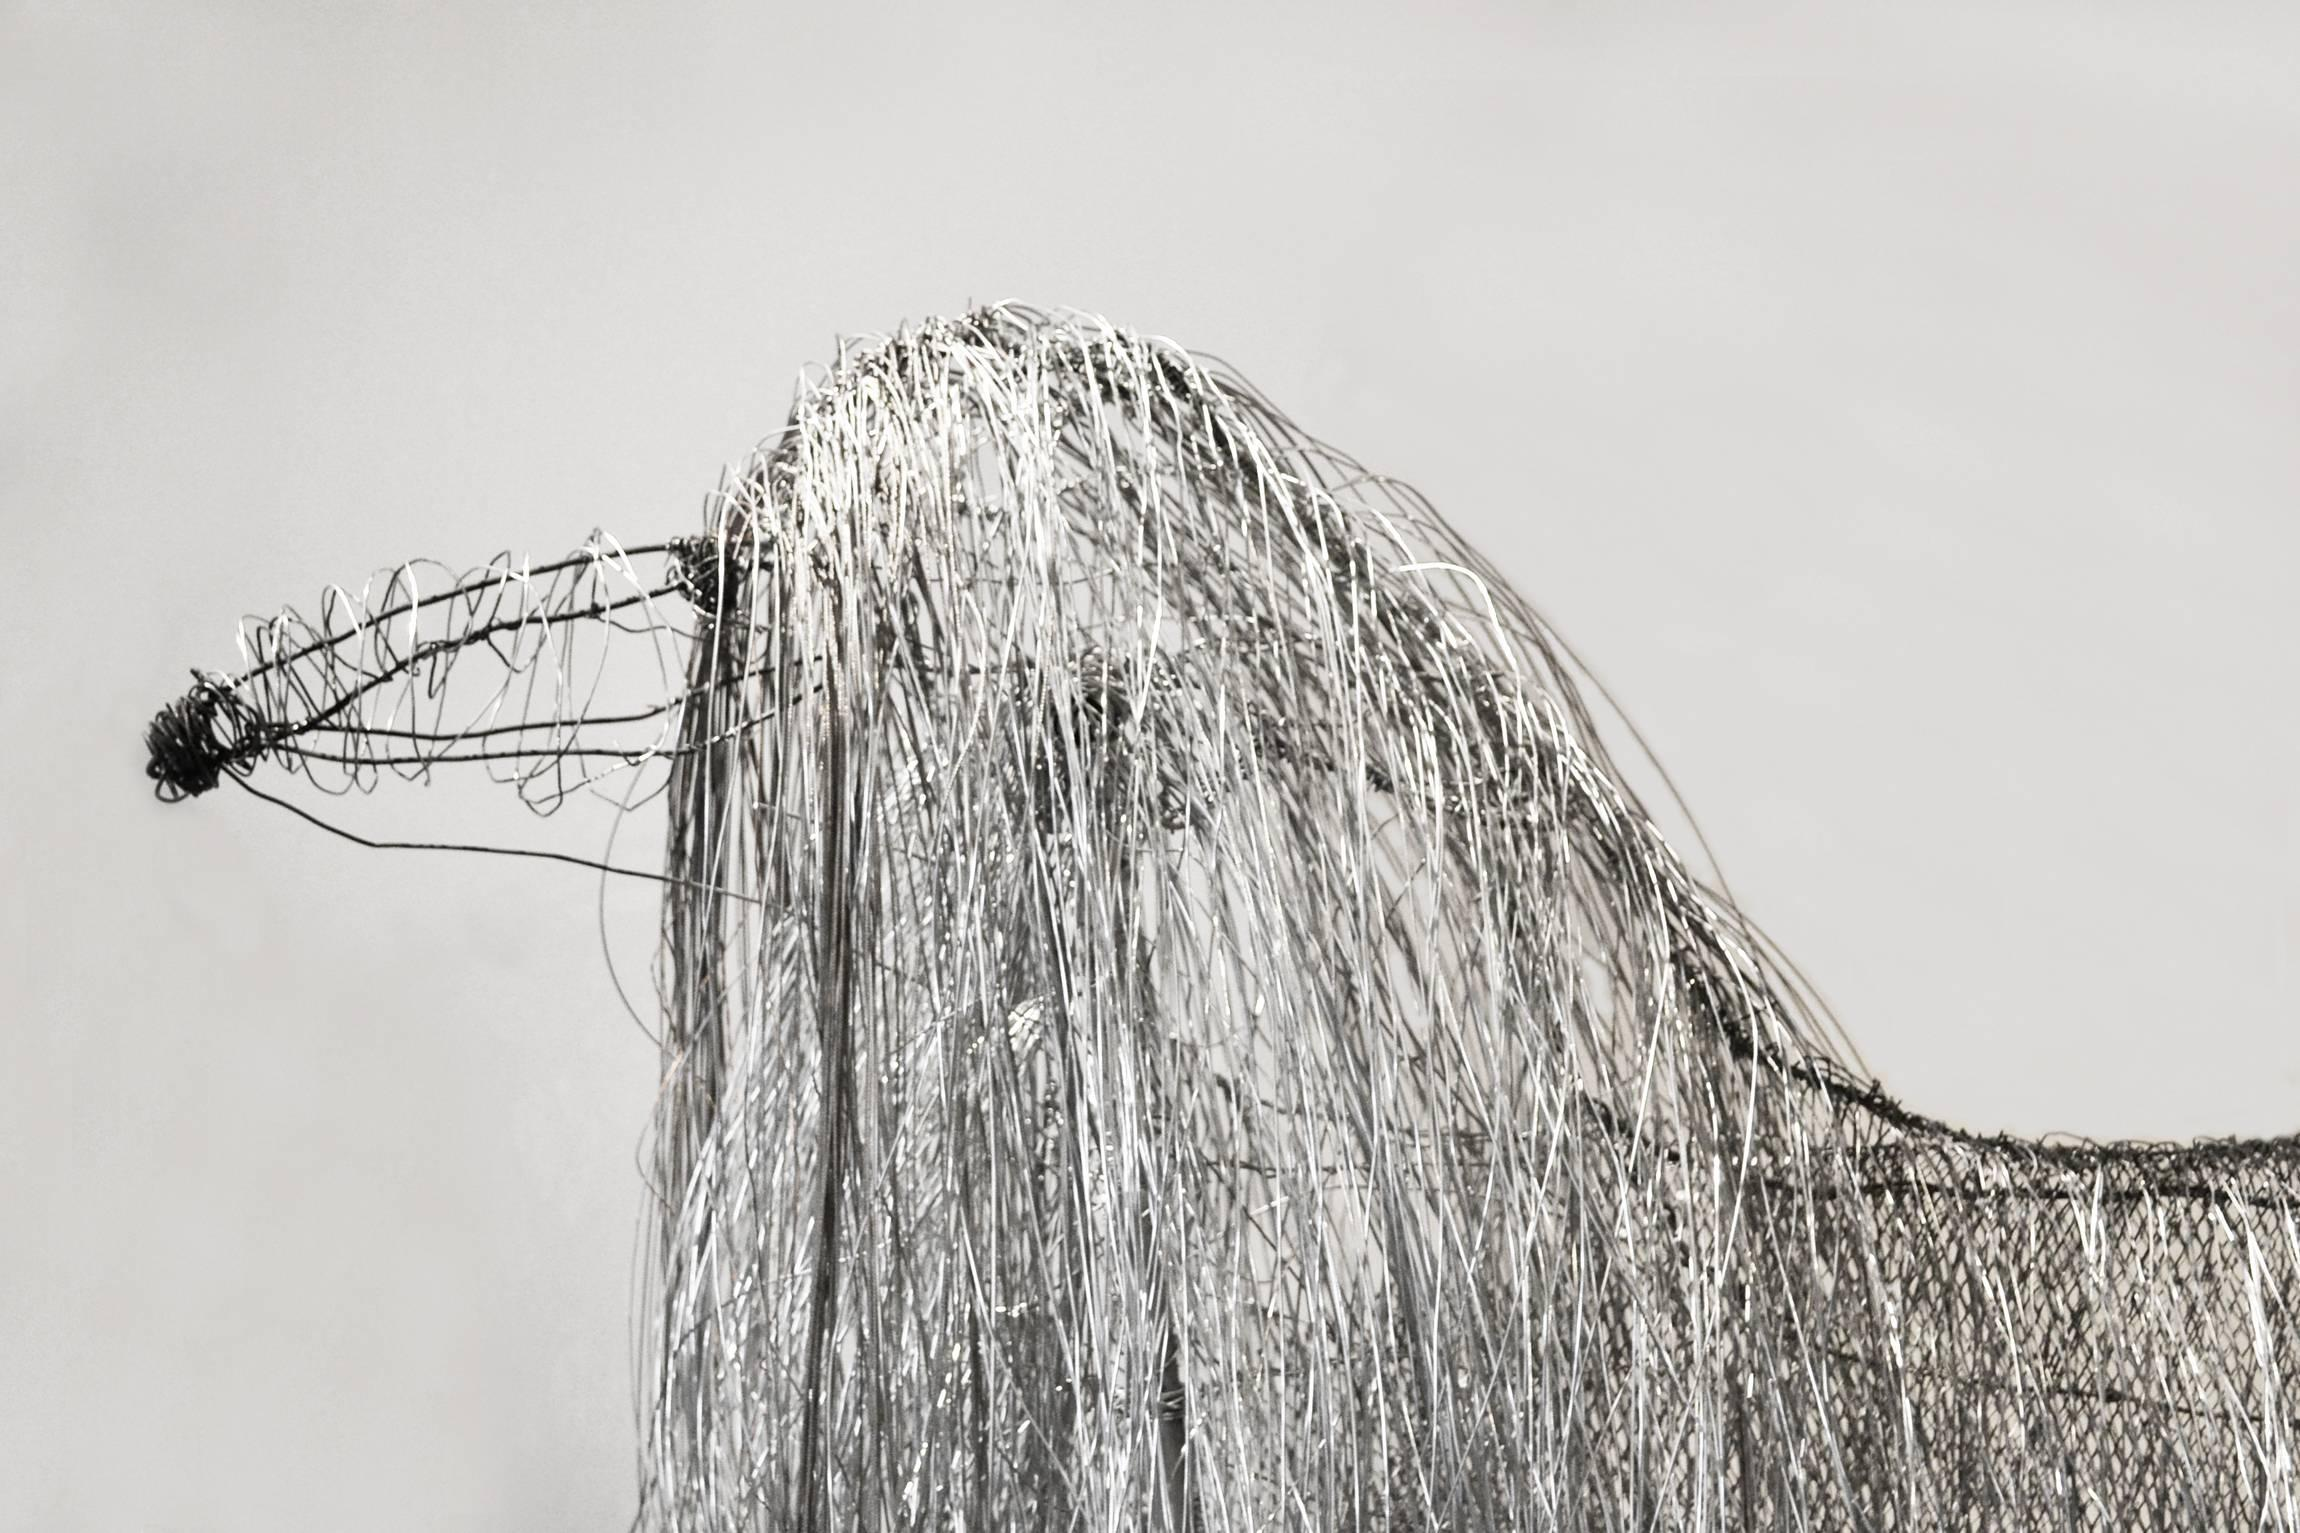 Large Wire Sculpture of an Afgan Hound by Artist Michael L. Jacques ...